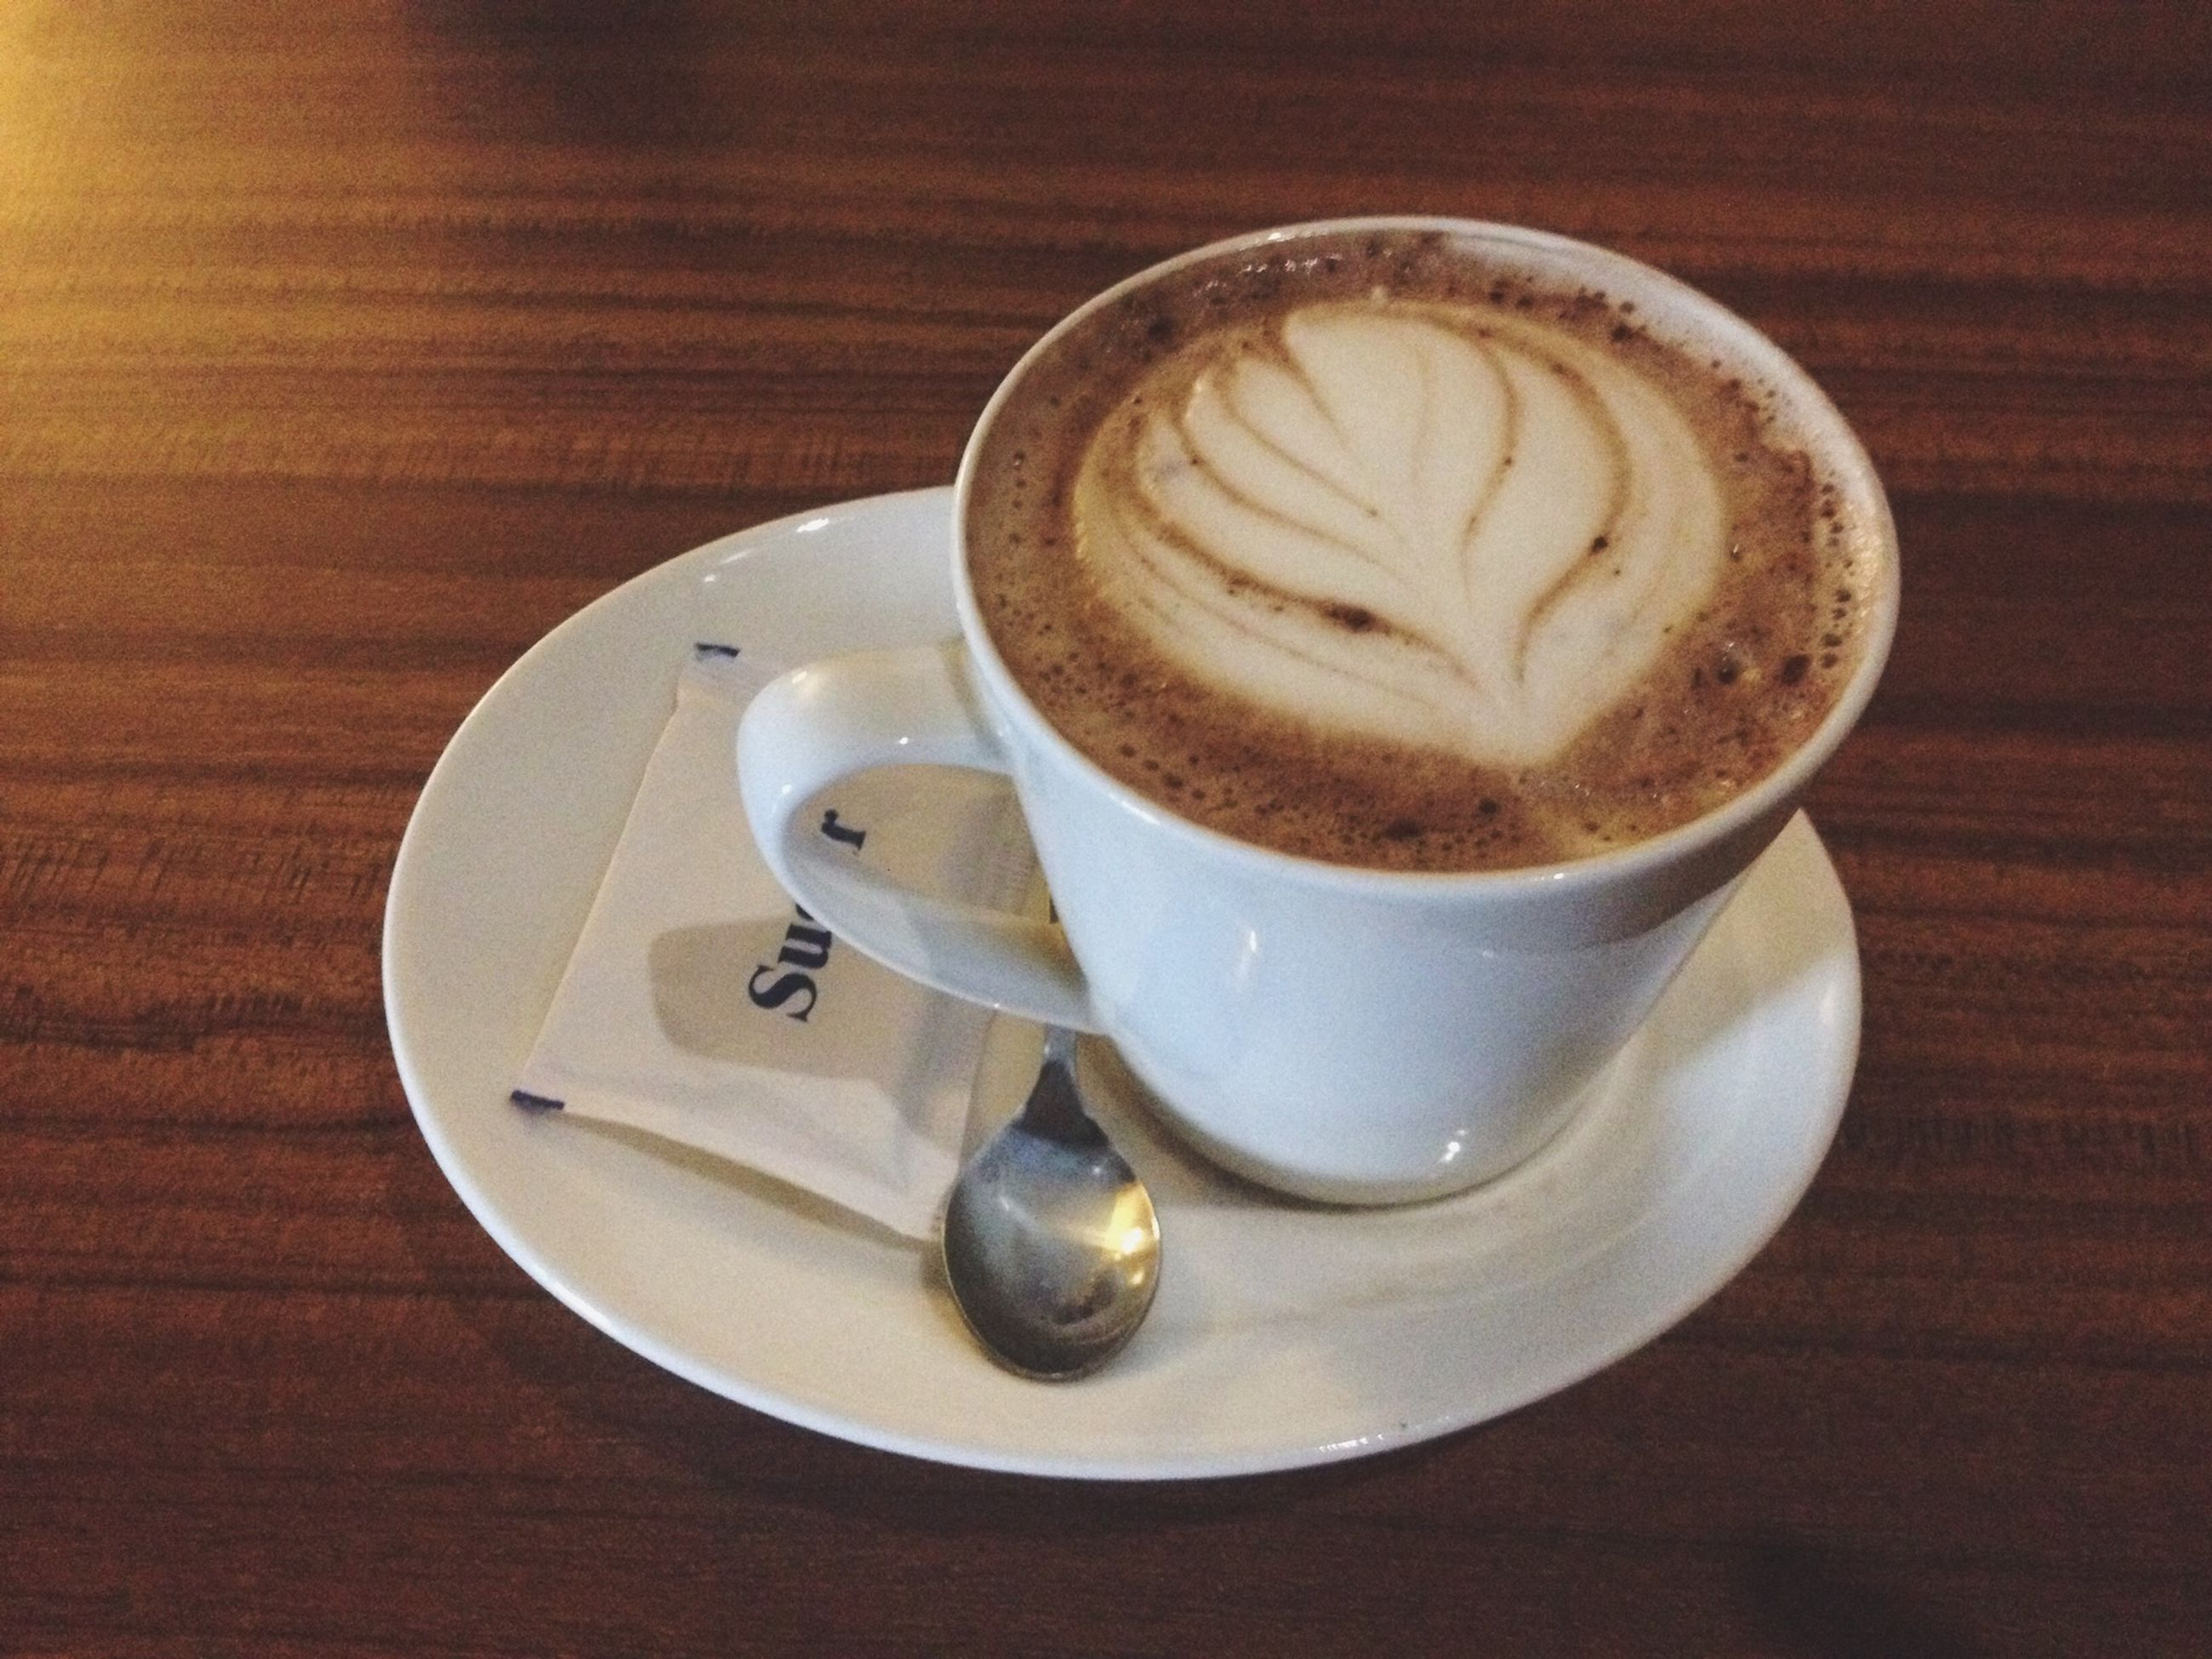 coffee cup, drink, food and drink, refreshment, saucer, coffee - drink, table, indoors, coffee, frothy drink, cappuccino, freshness, froth art, cup, still life, spoon, close-up, high angle view, beverage, latte